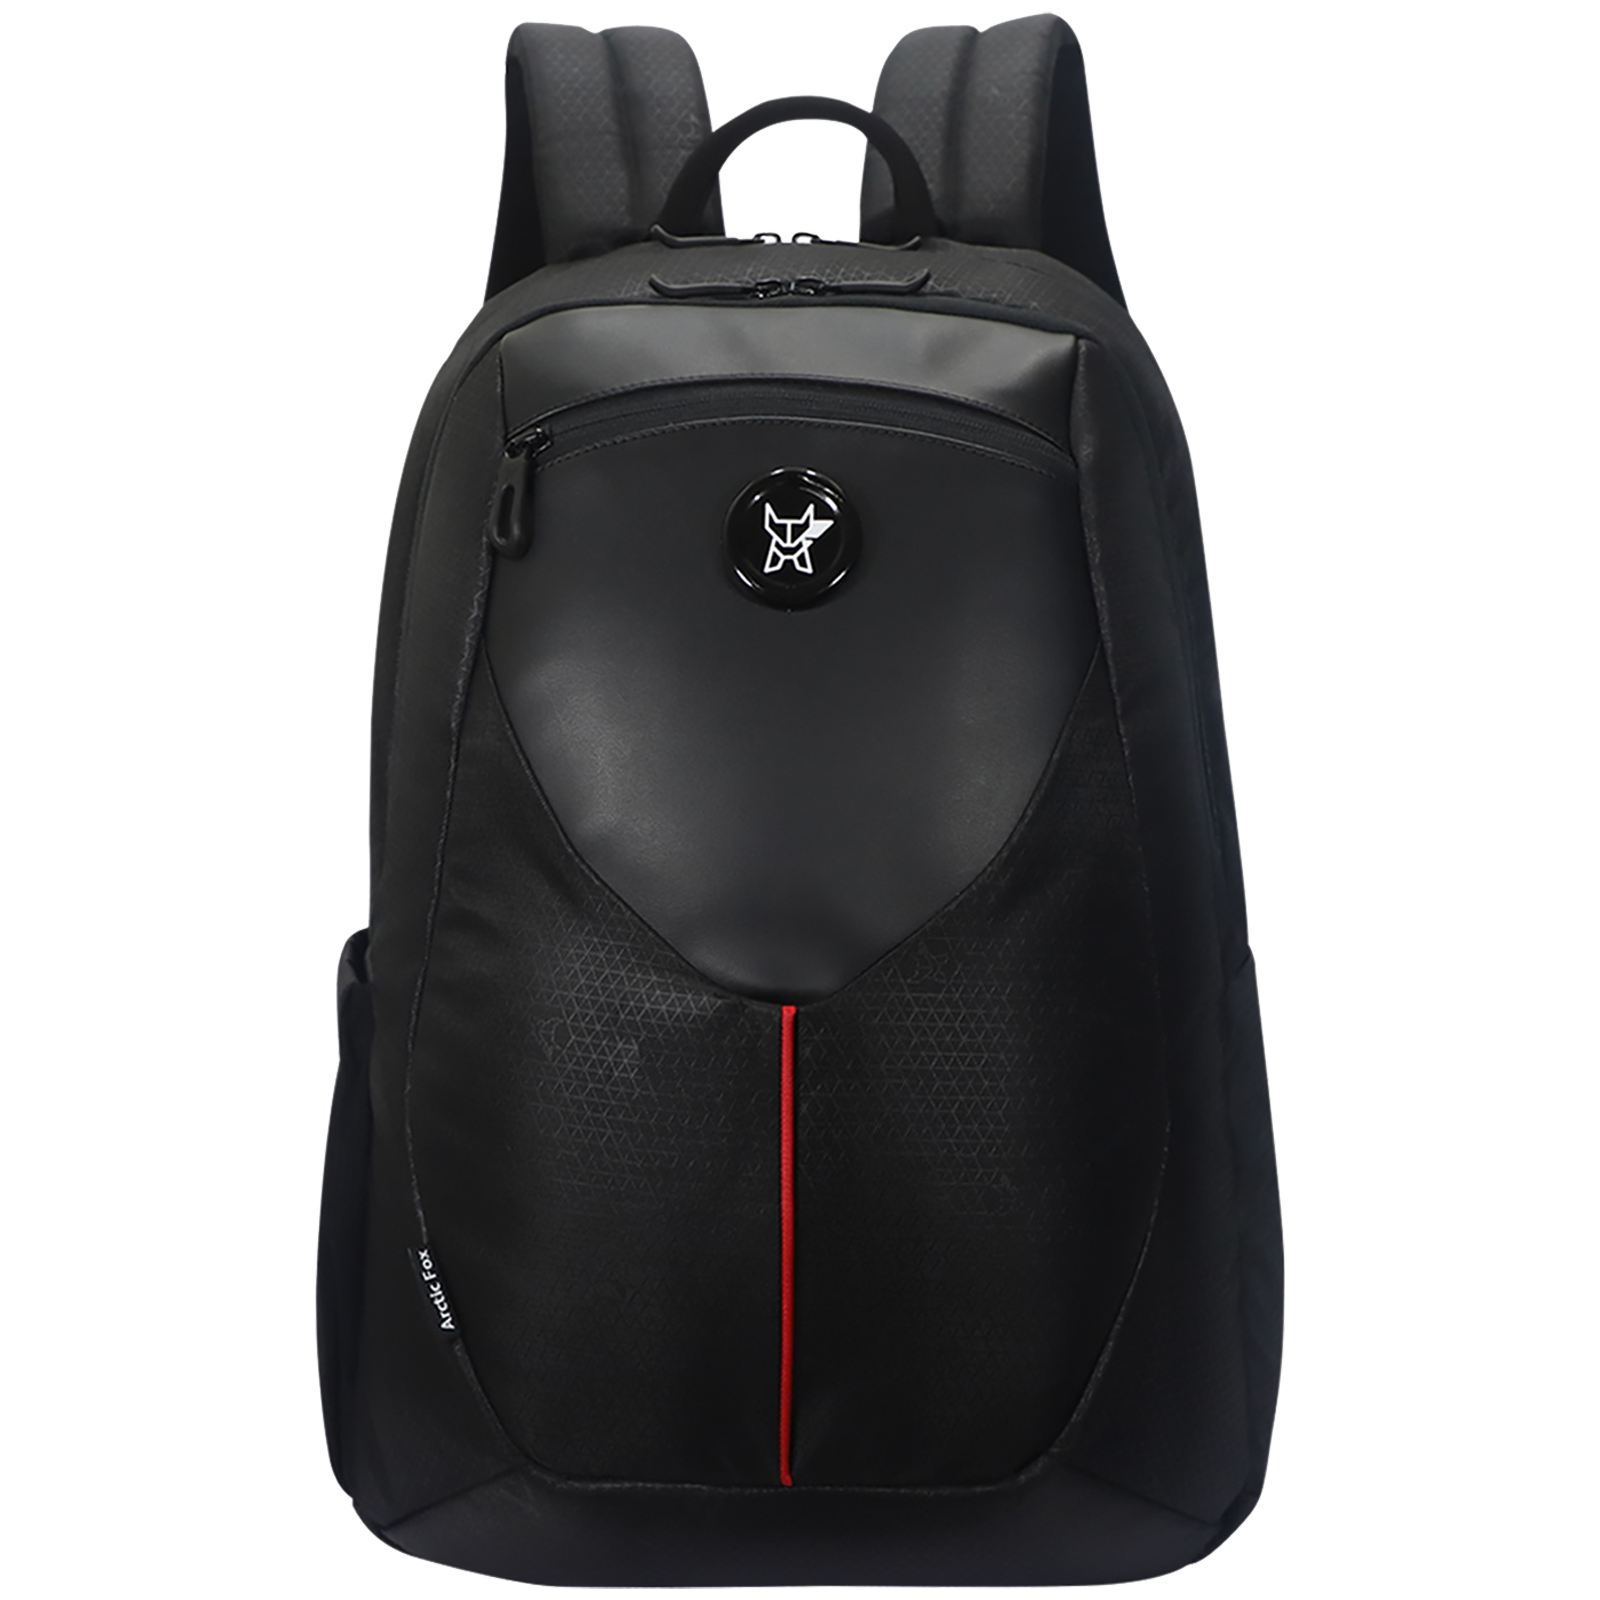 Arctic Fox Shield 30 Litres Polyester Backpack for 15 Inch Laptop (Spacious Padded Compartment, FUNBPKBLKWZ095030, Black)_1